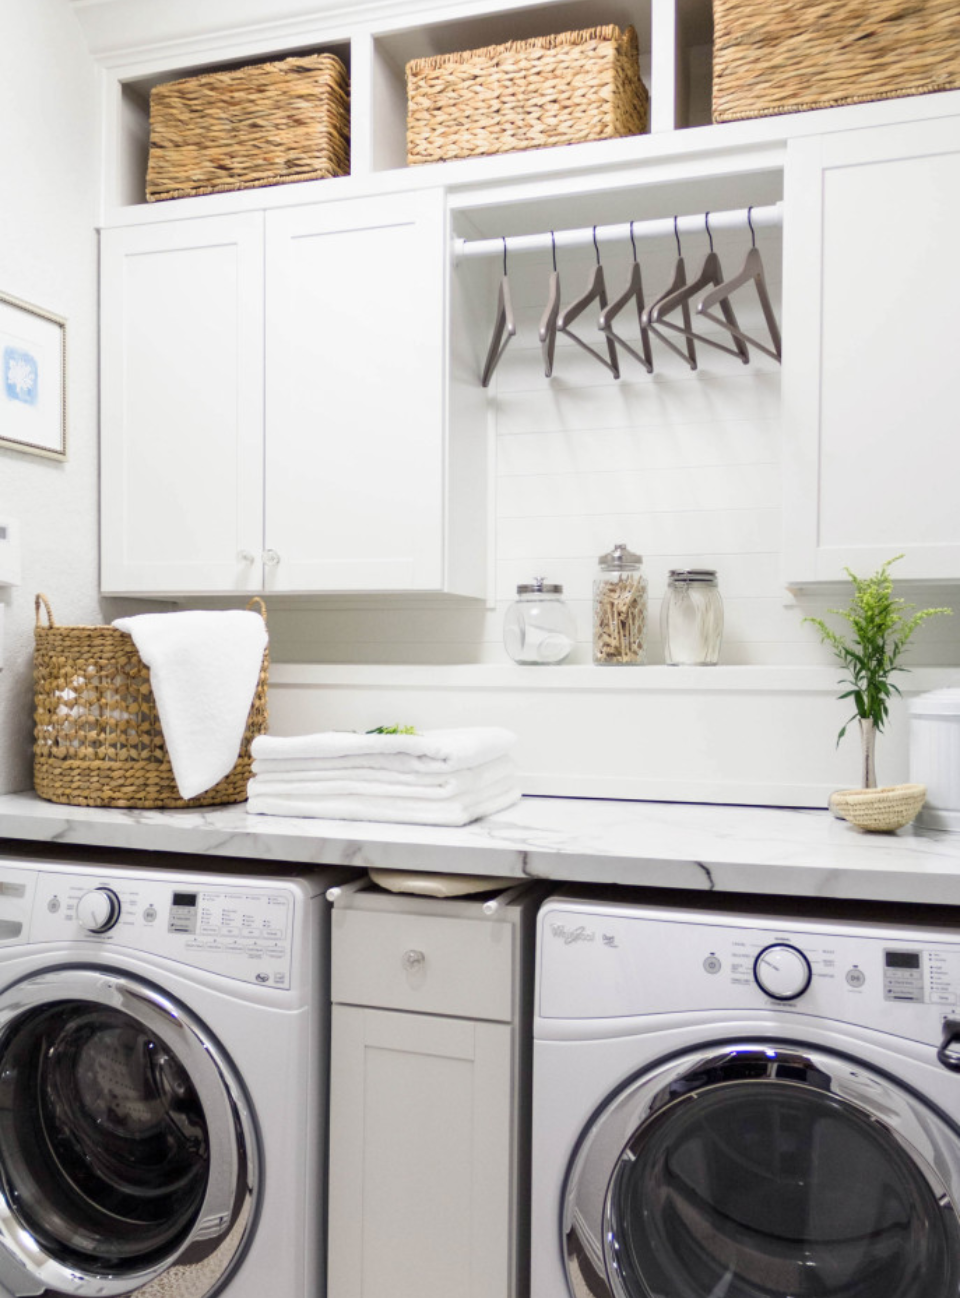 pin by megan decker on home 1682 white laundry rooms on lowe s laundry room storage cabinets id=94046